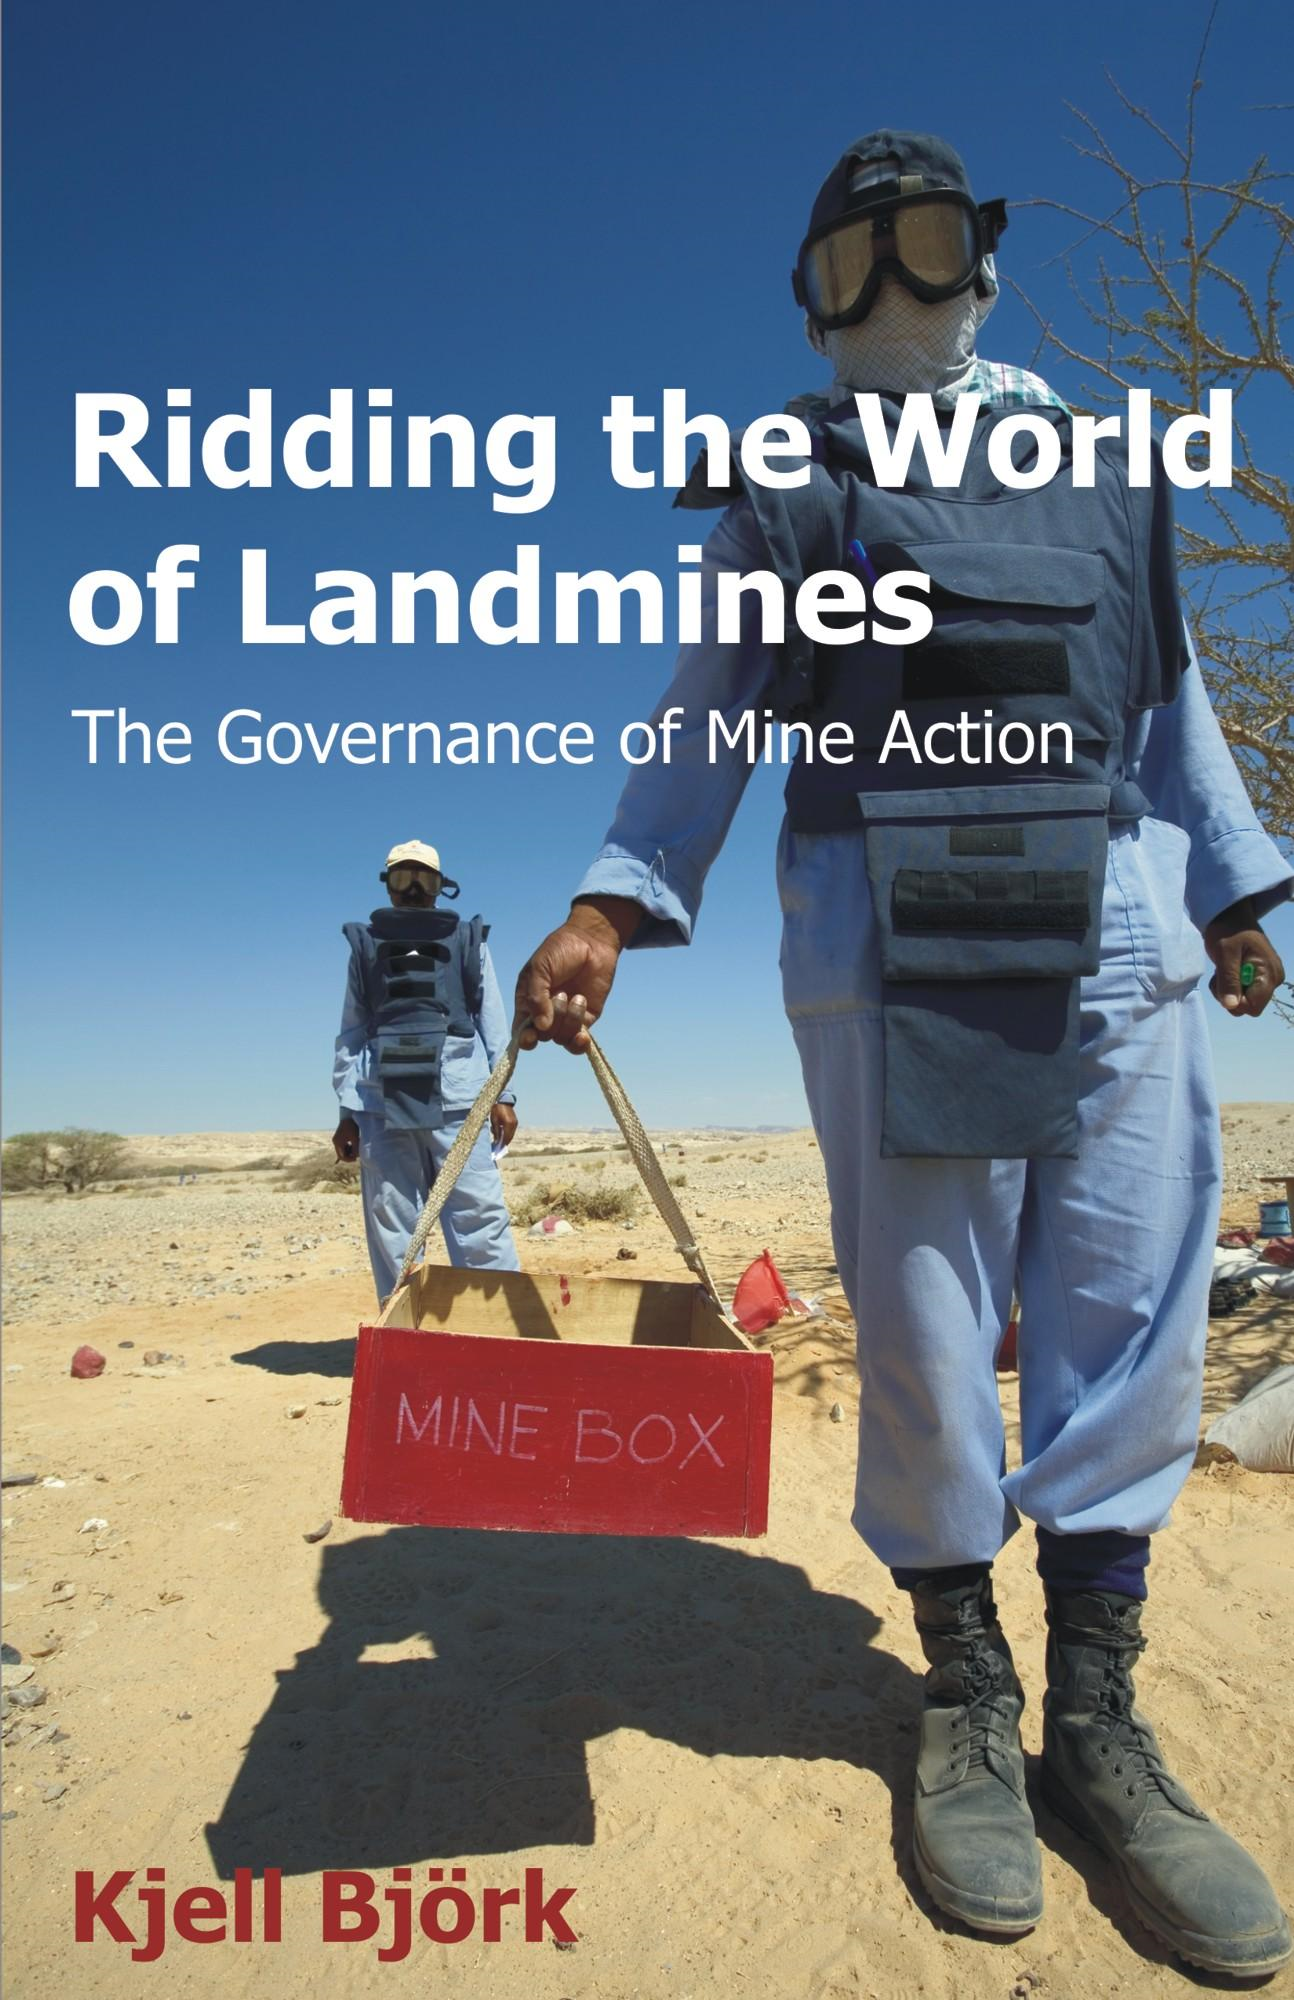 Ridding the World of Landmines: The Governance of Mine Action